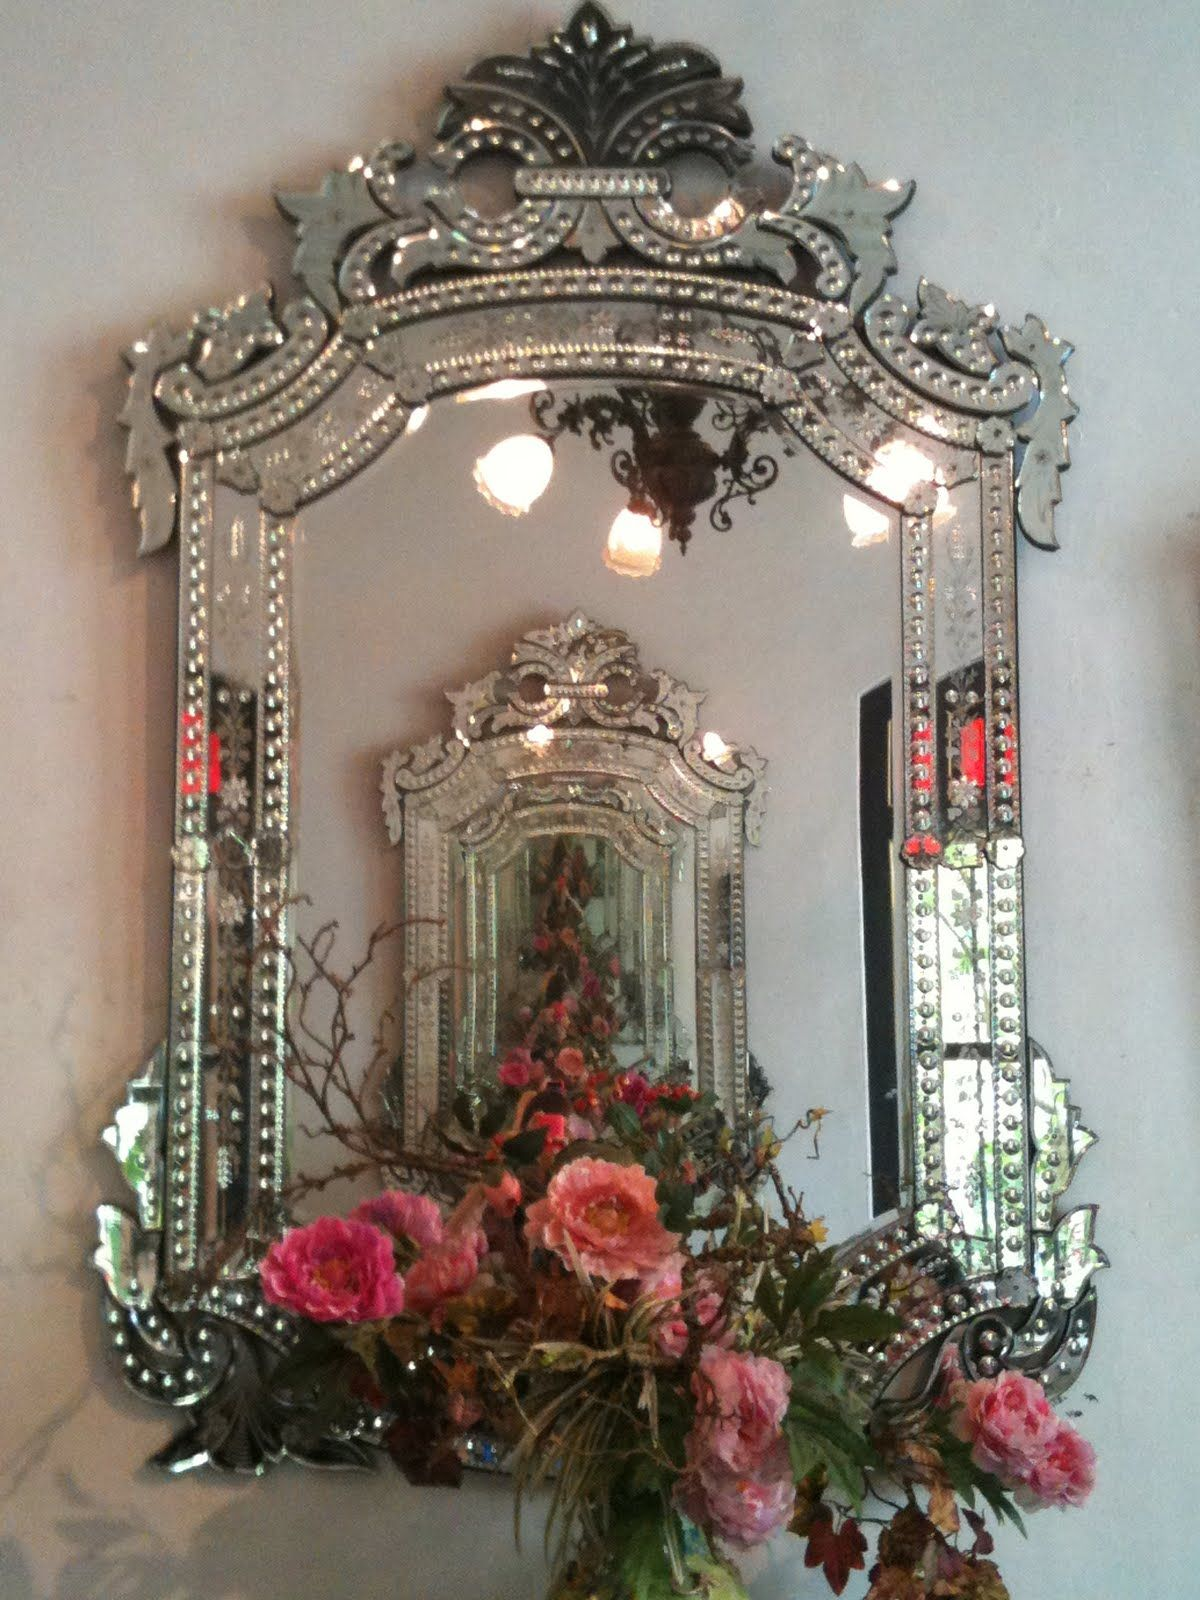 Venetian mirror : am'I  the prettiest asked the rose